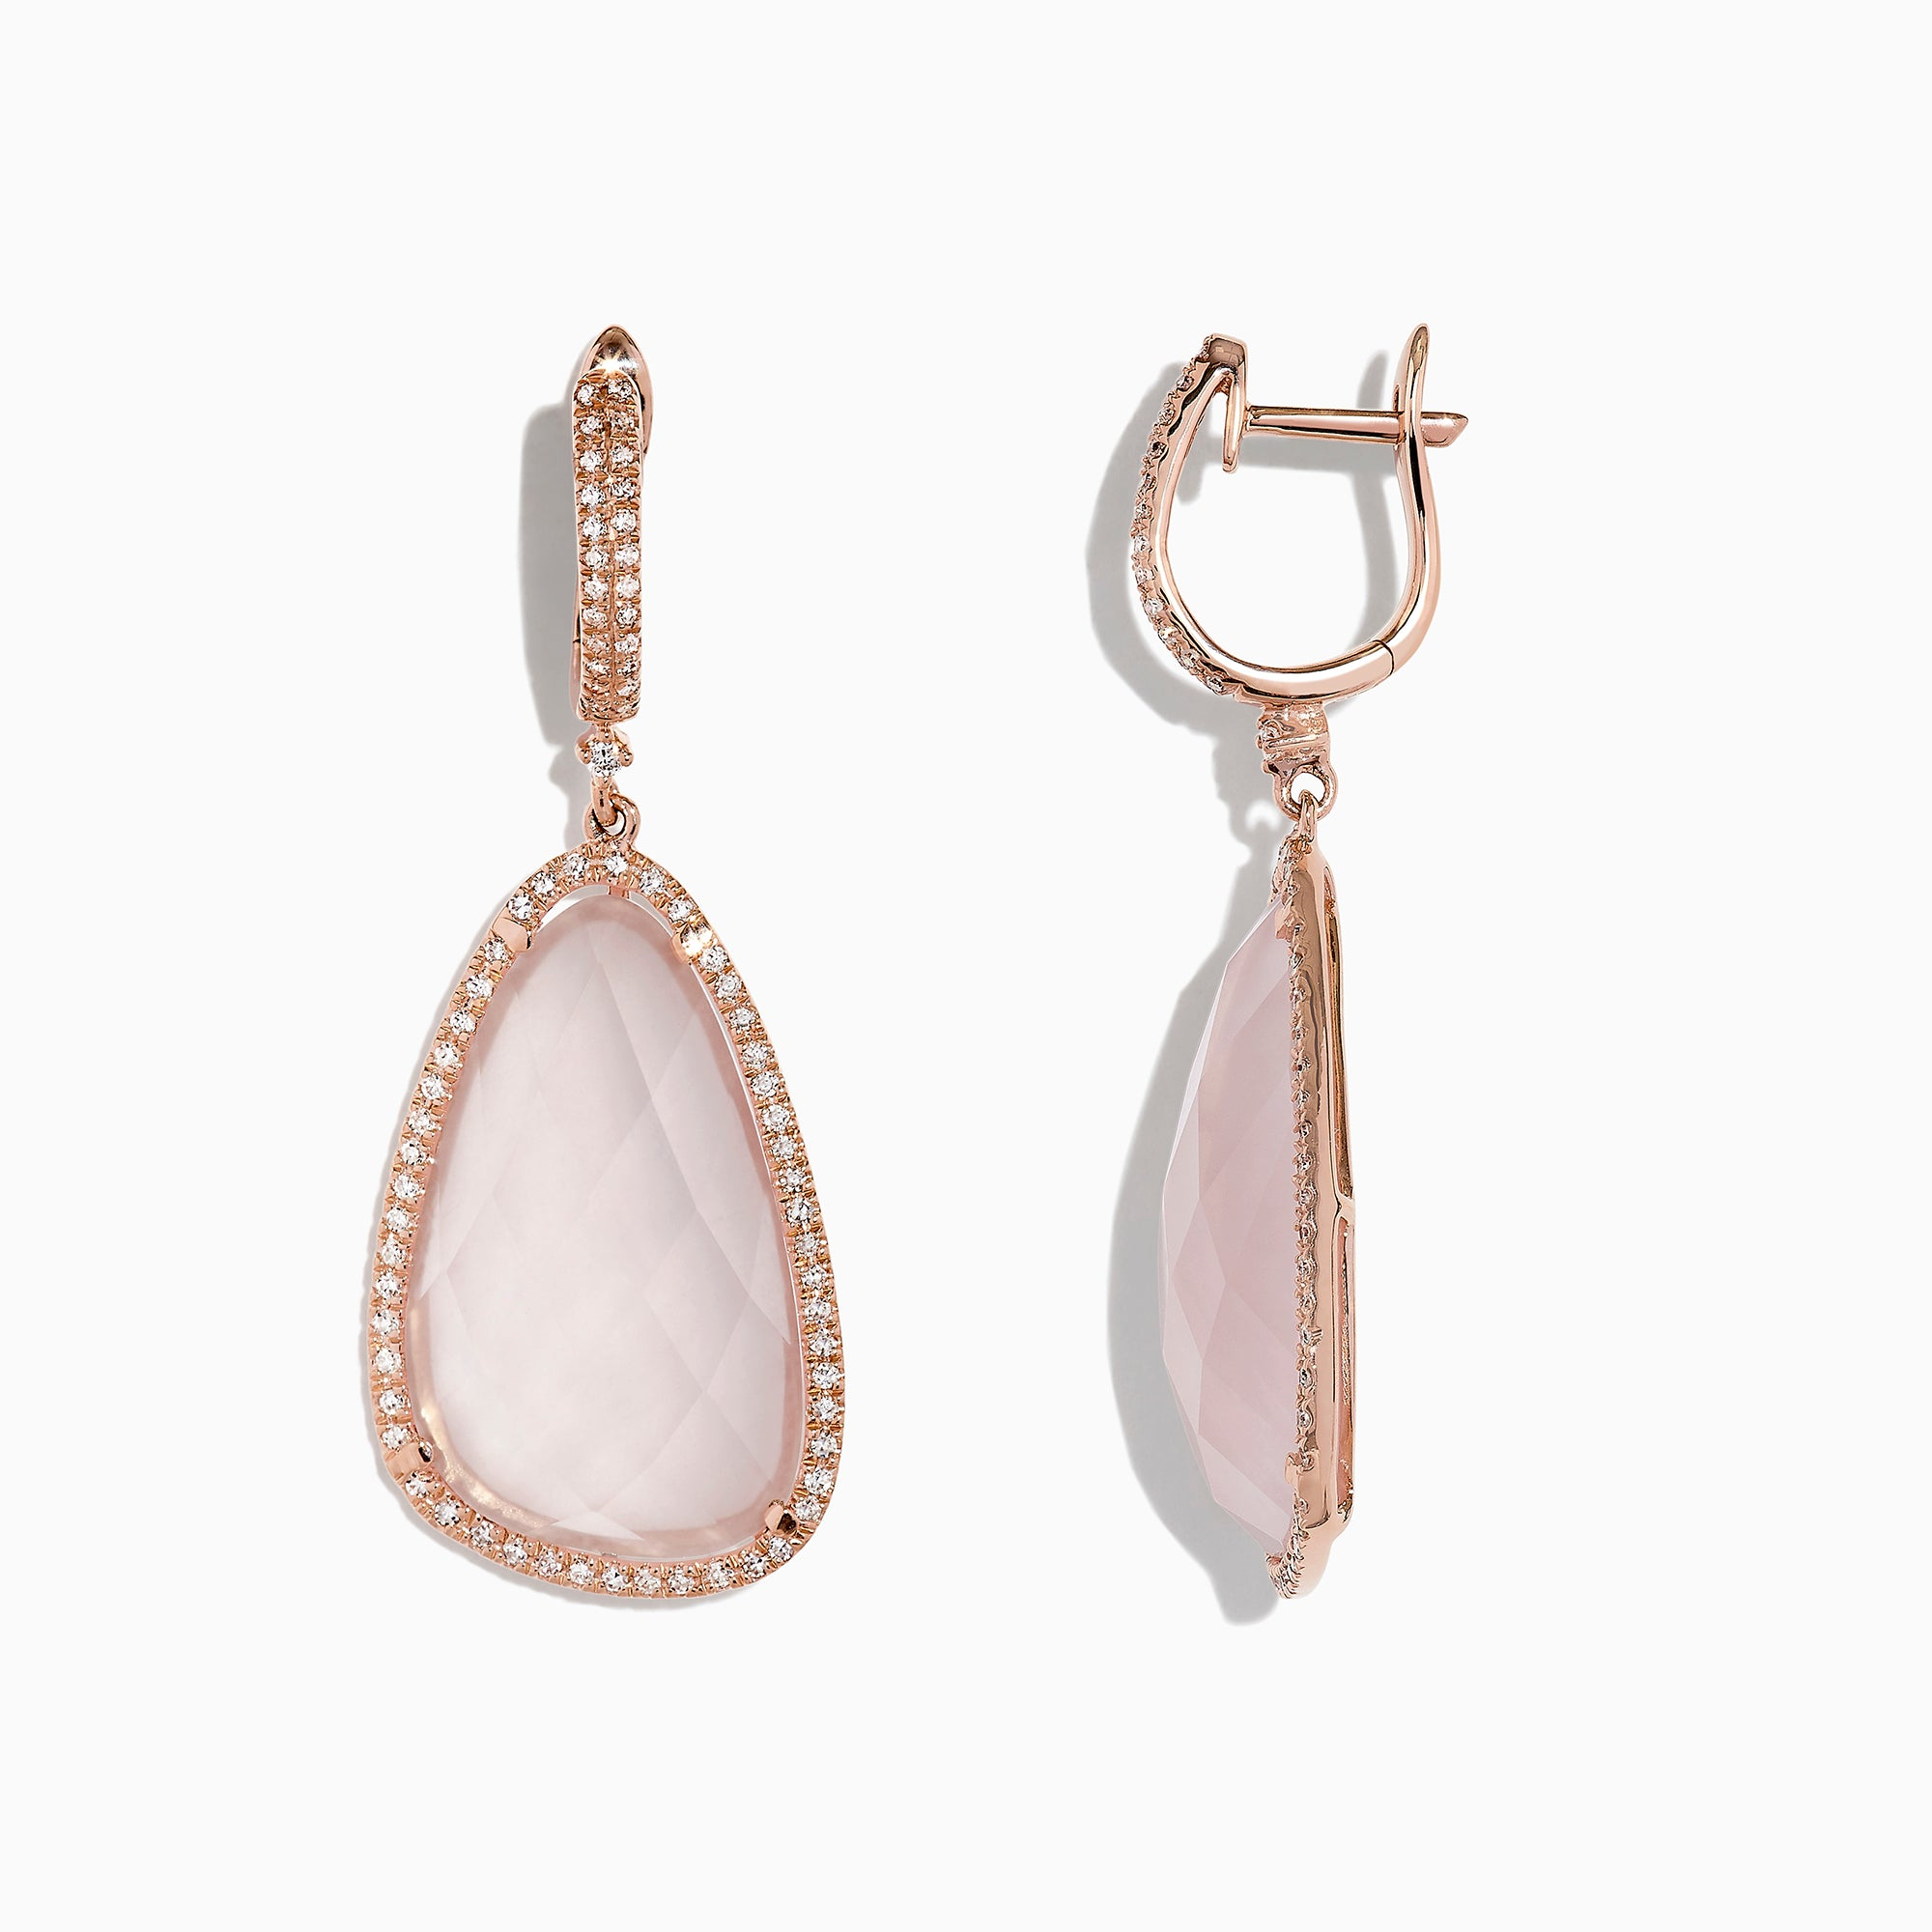 Effy 14K Rose Gold Pink Quartz and Diamond Earrings, 24.36 TCW